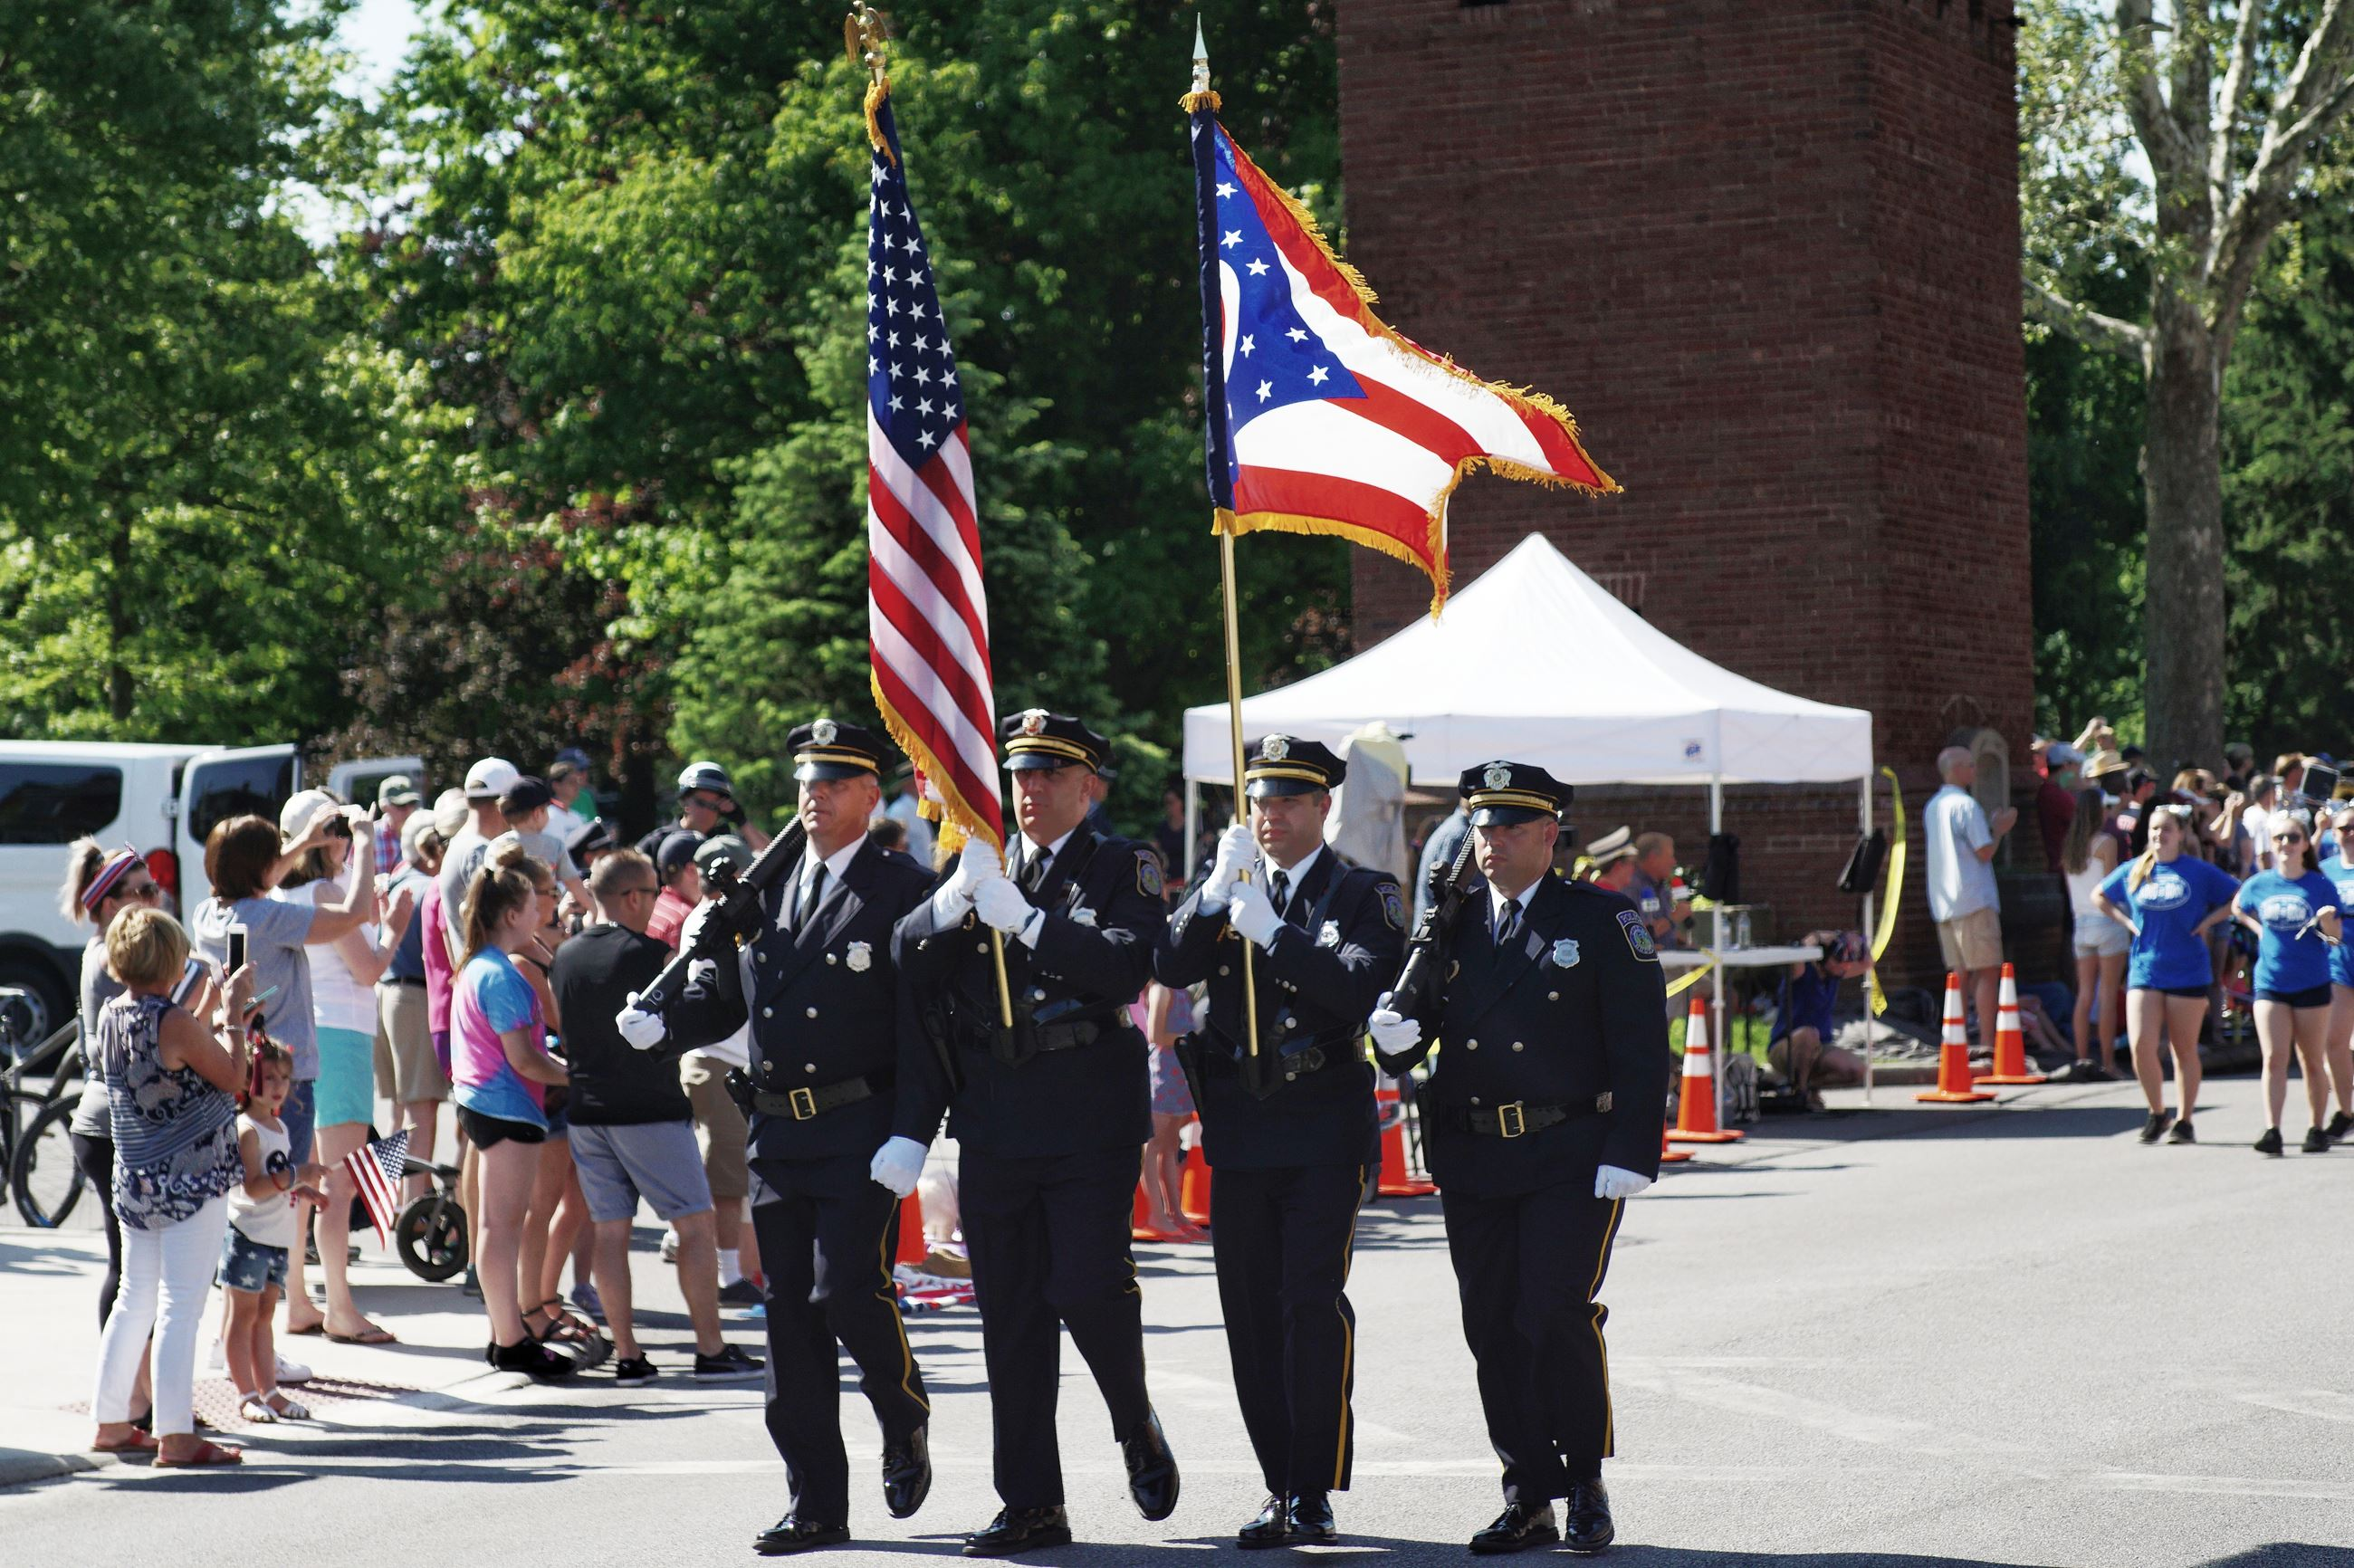 Honor Guard at MemDayParade 2018